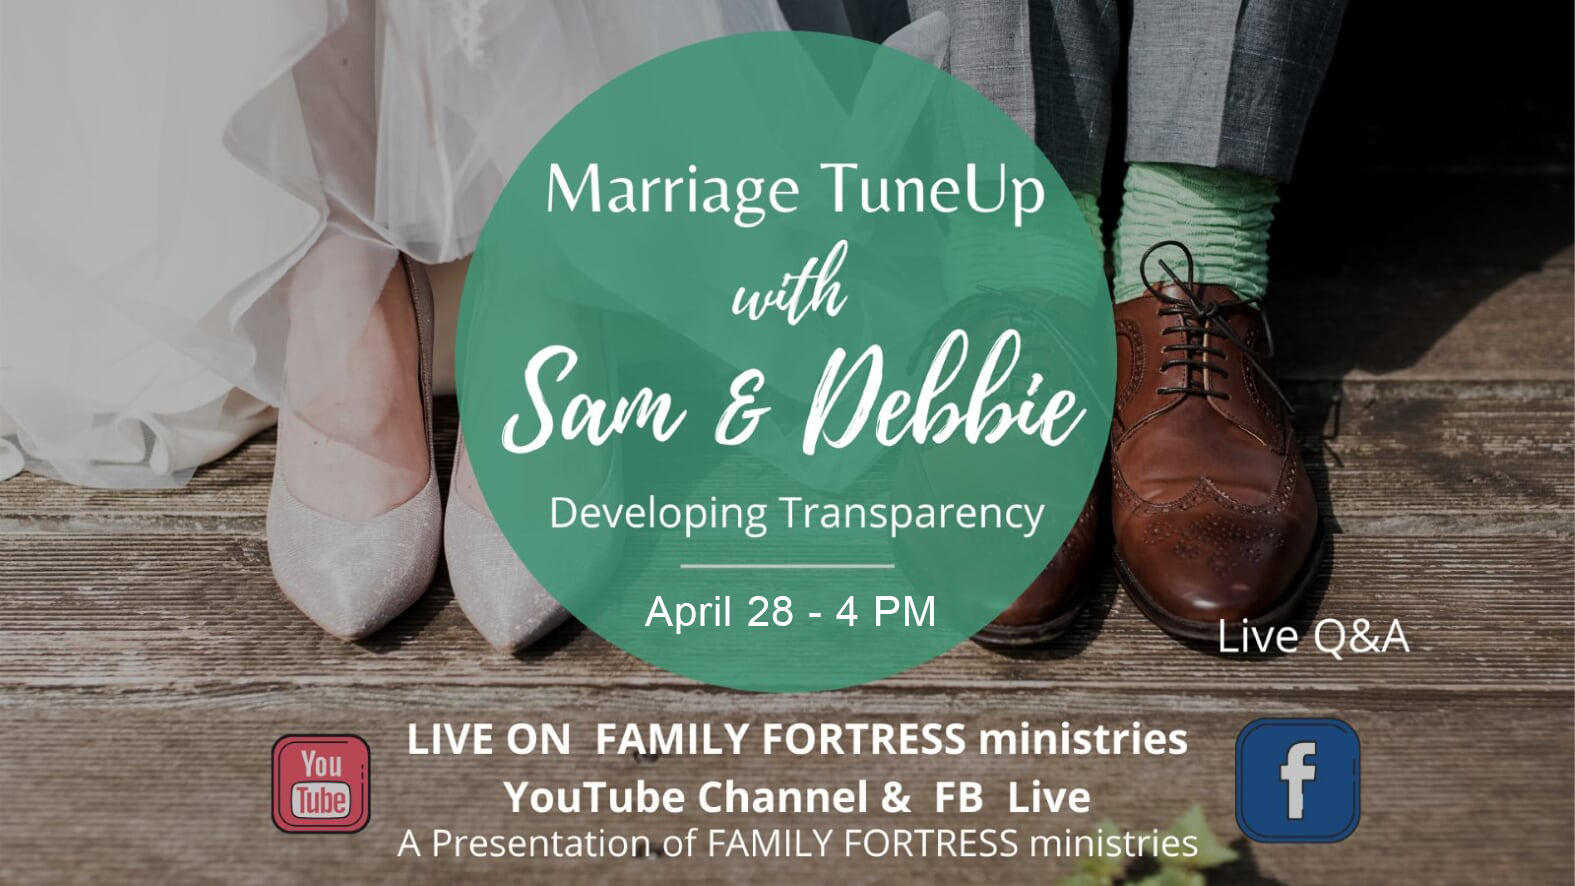 Marriage TuneUp with Sam & Debbie Wood